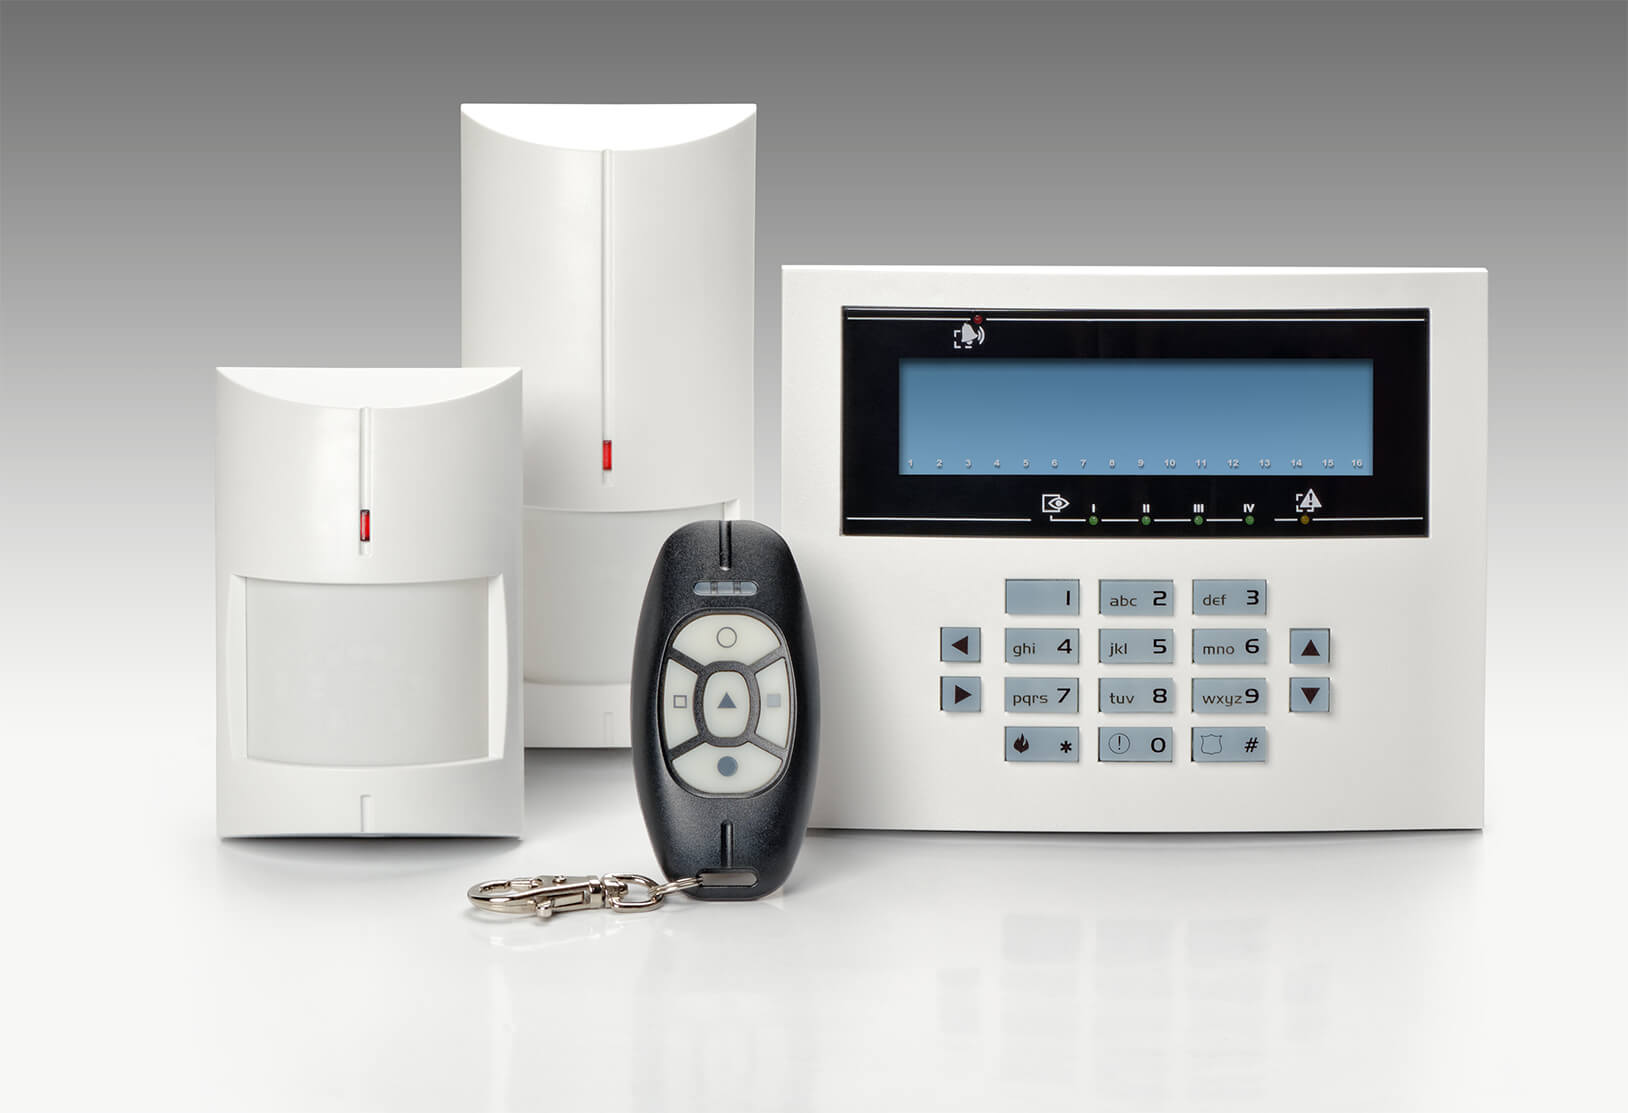 Commercial Burglar Alarms For Business in City of London E1  - Local City of London E1 burglar alarm company.Call 02078872244 - Dedicated to Safety & Security. Companies, shops and homes ..